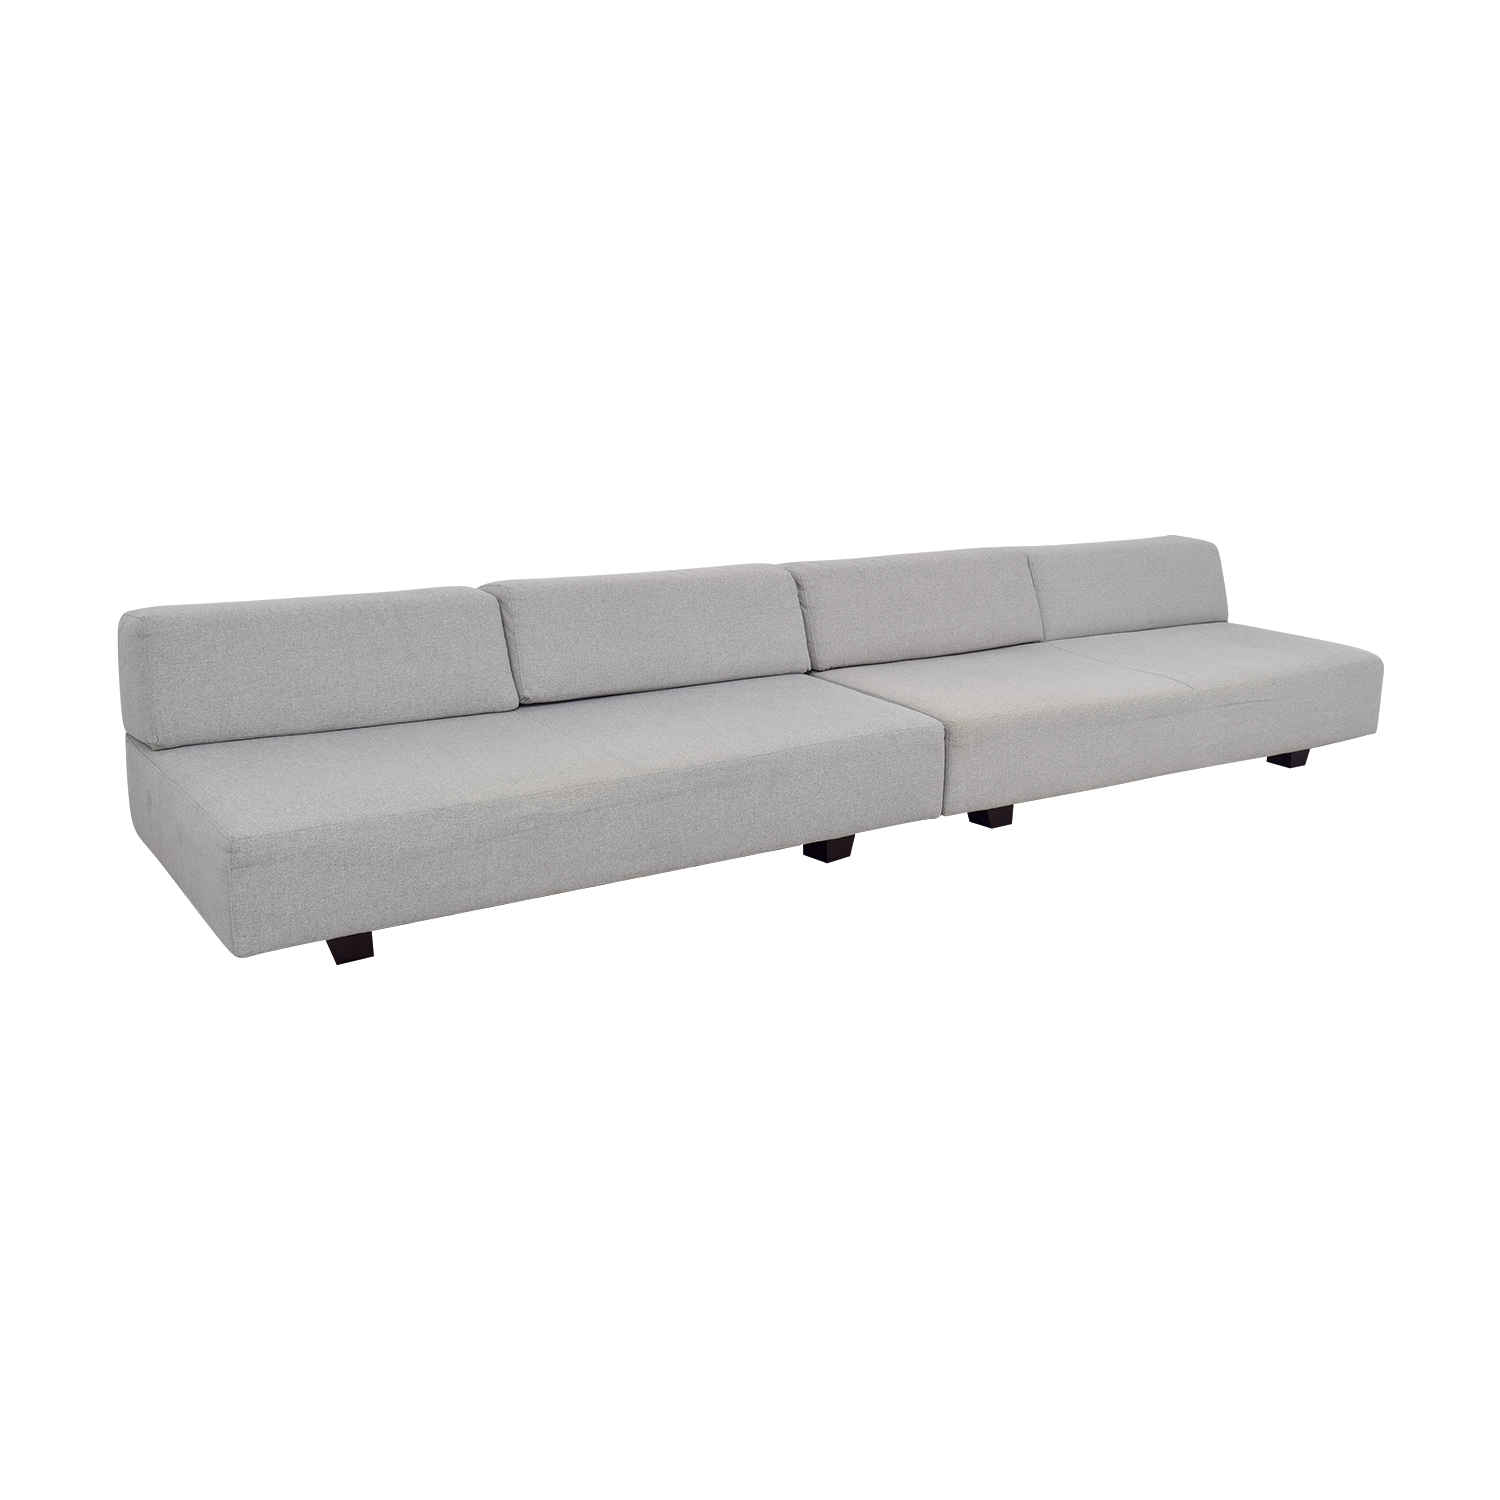 ... West Elm West Elm Tillary Chenille Tweed Feather Gray Modular Seating  Sofa Discount ...